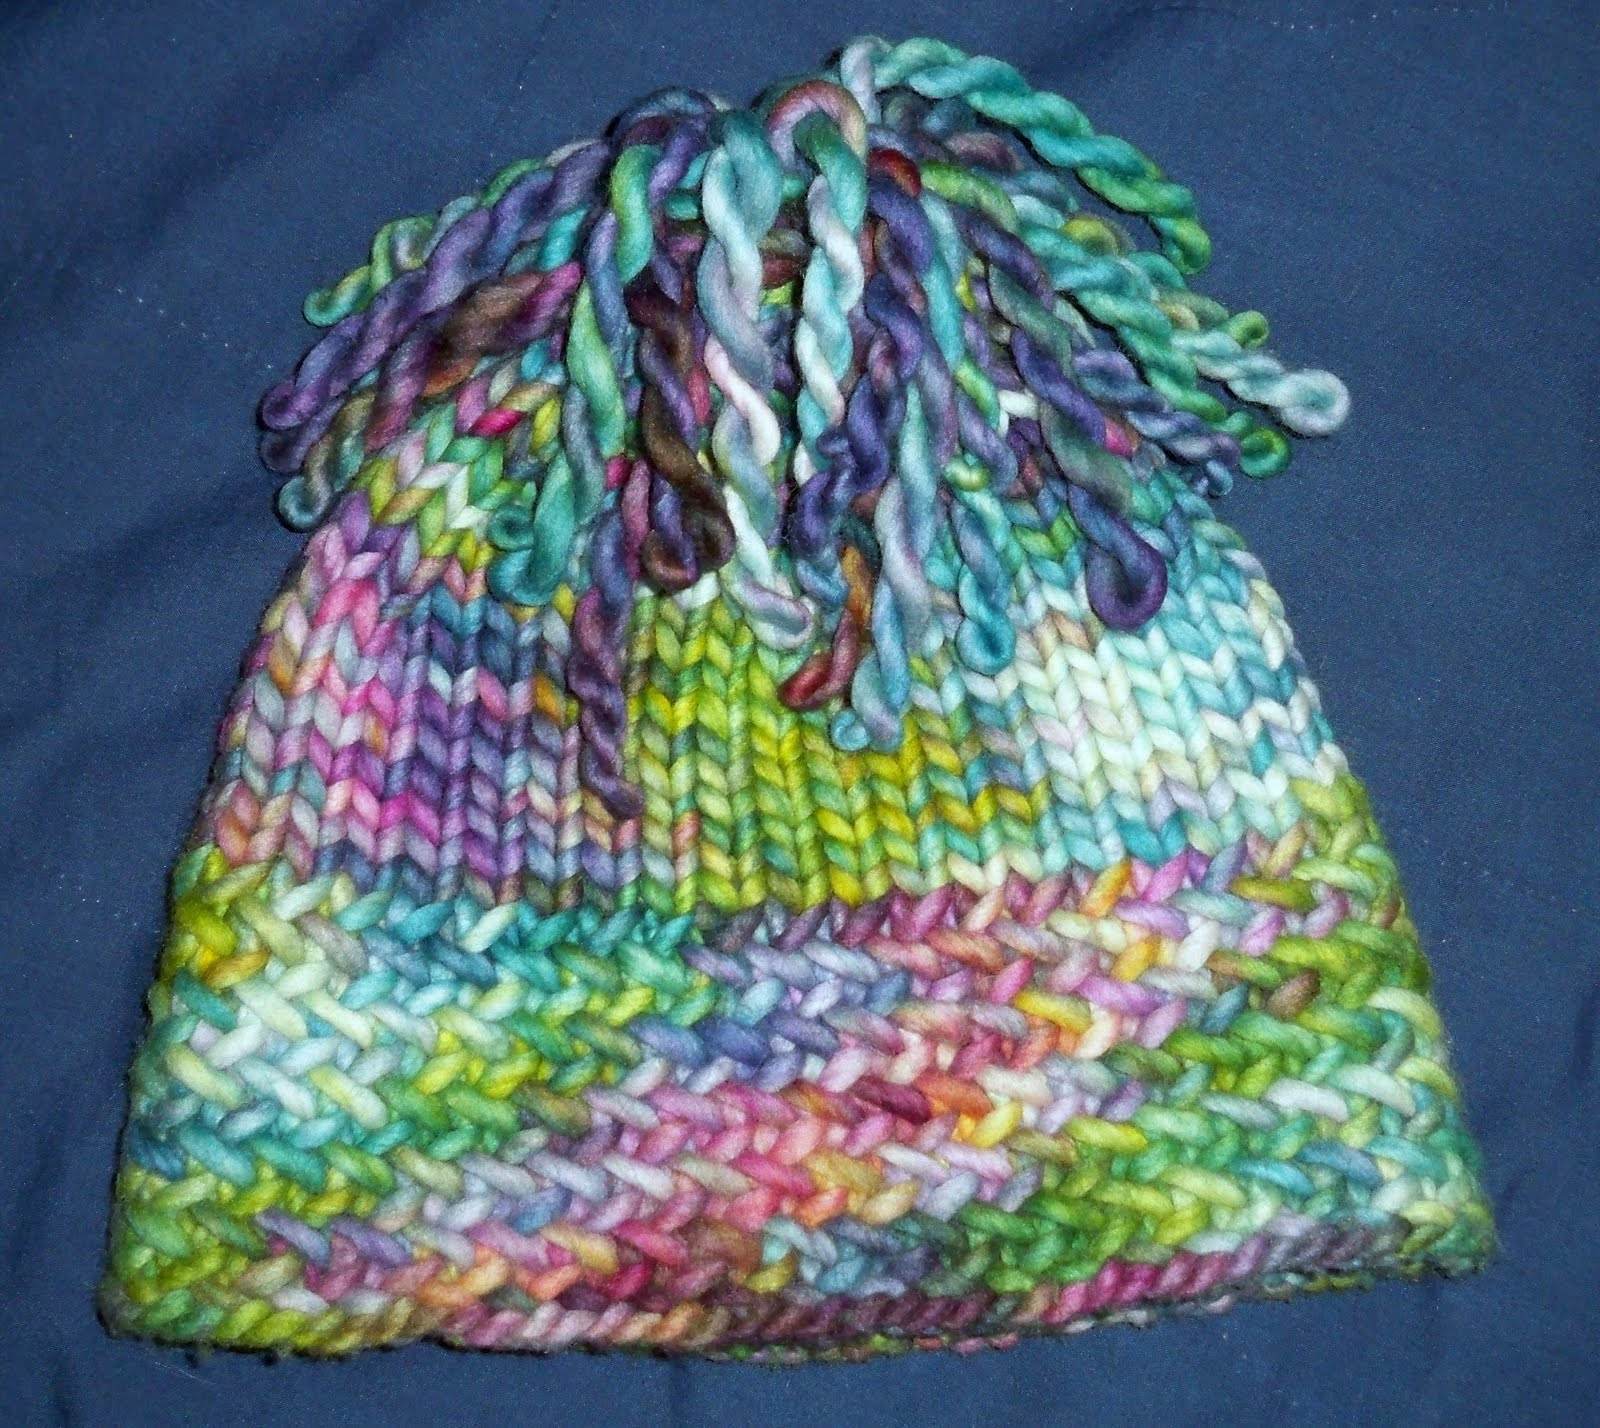 Knitting Patterns For Rasta Hats : Saras Colorwave Blog: RASTA HERRINGBONE HAT WITH DREADS